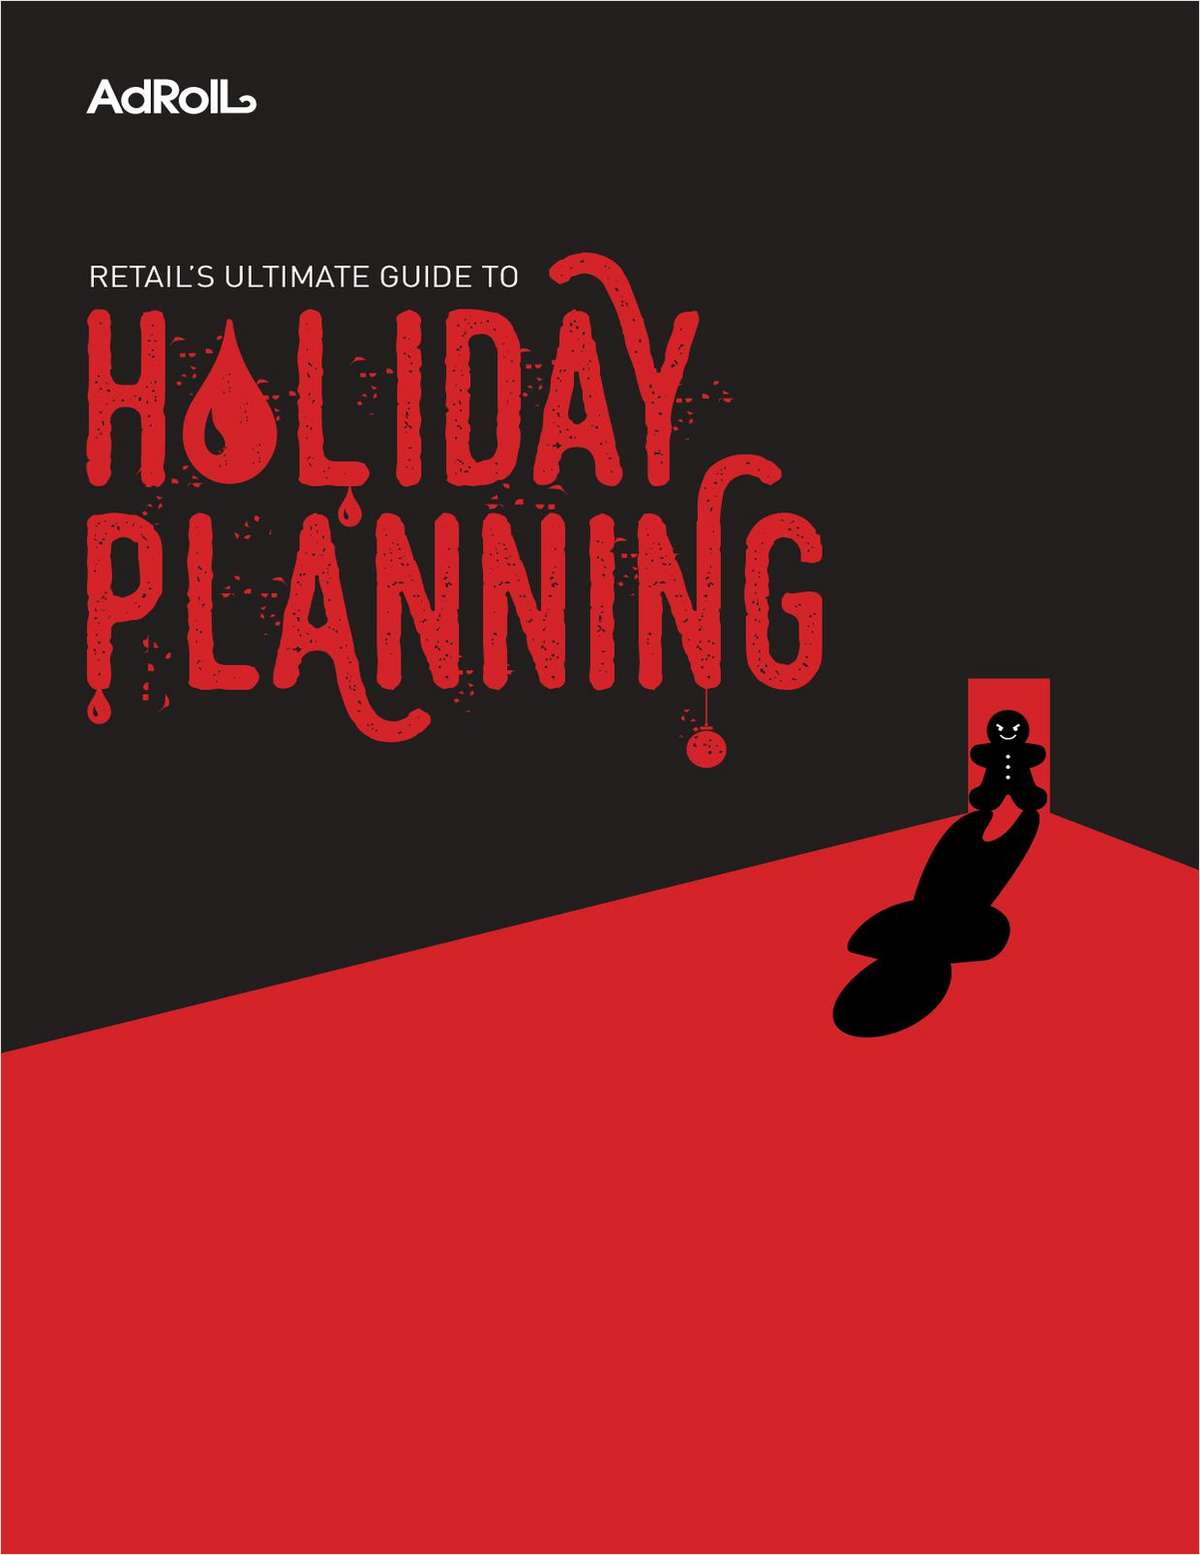 Retail's Ultimate Guide to Holiday Planning